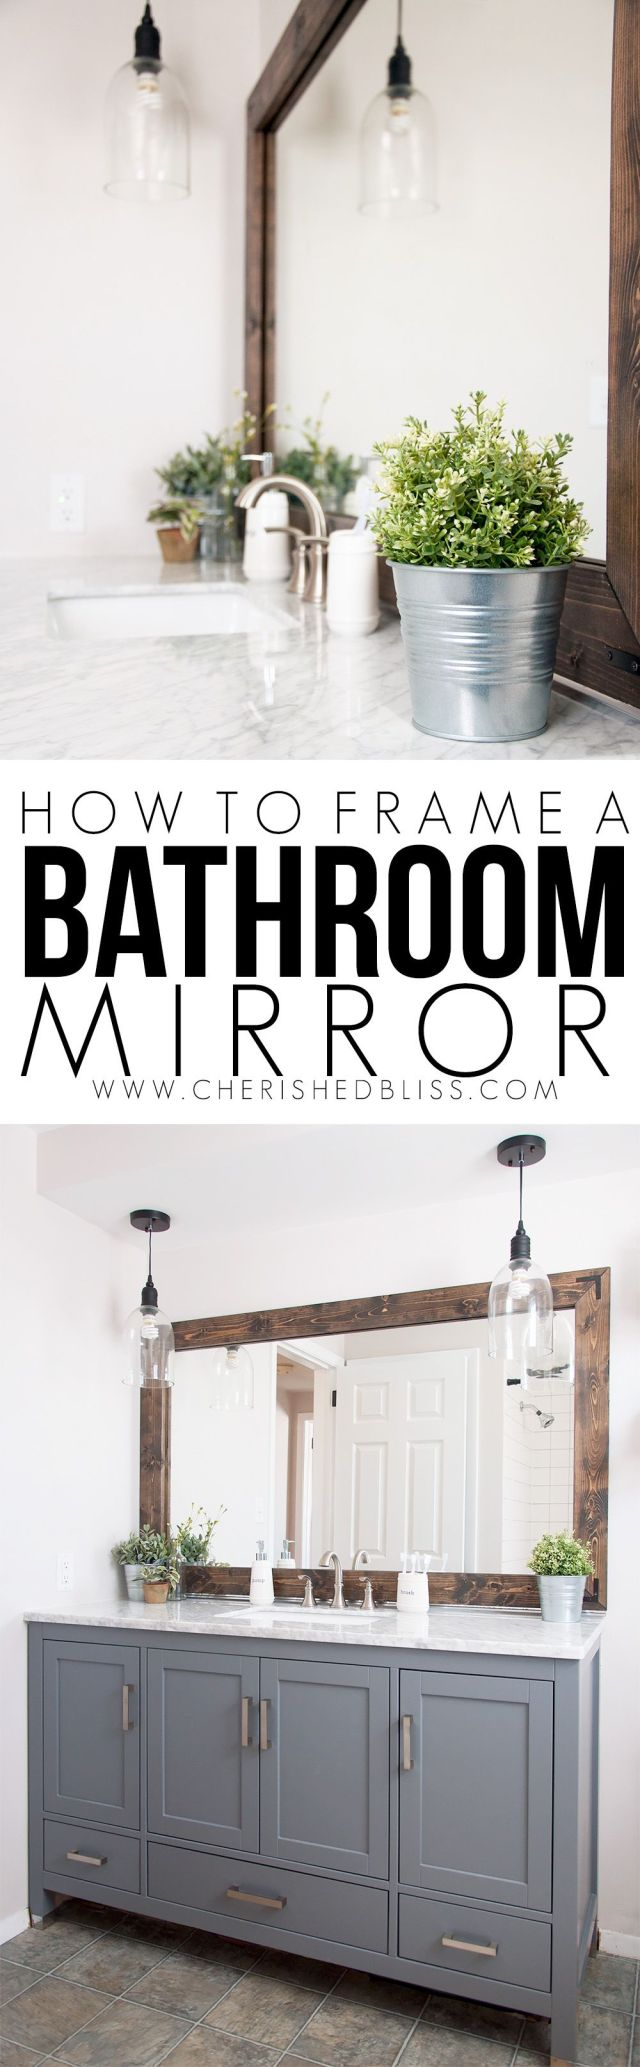 The best tutorial yet on framing a bathroom mirror No nails